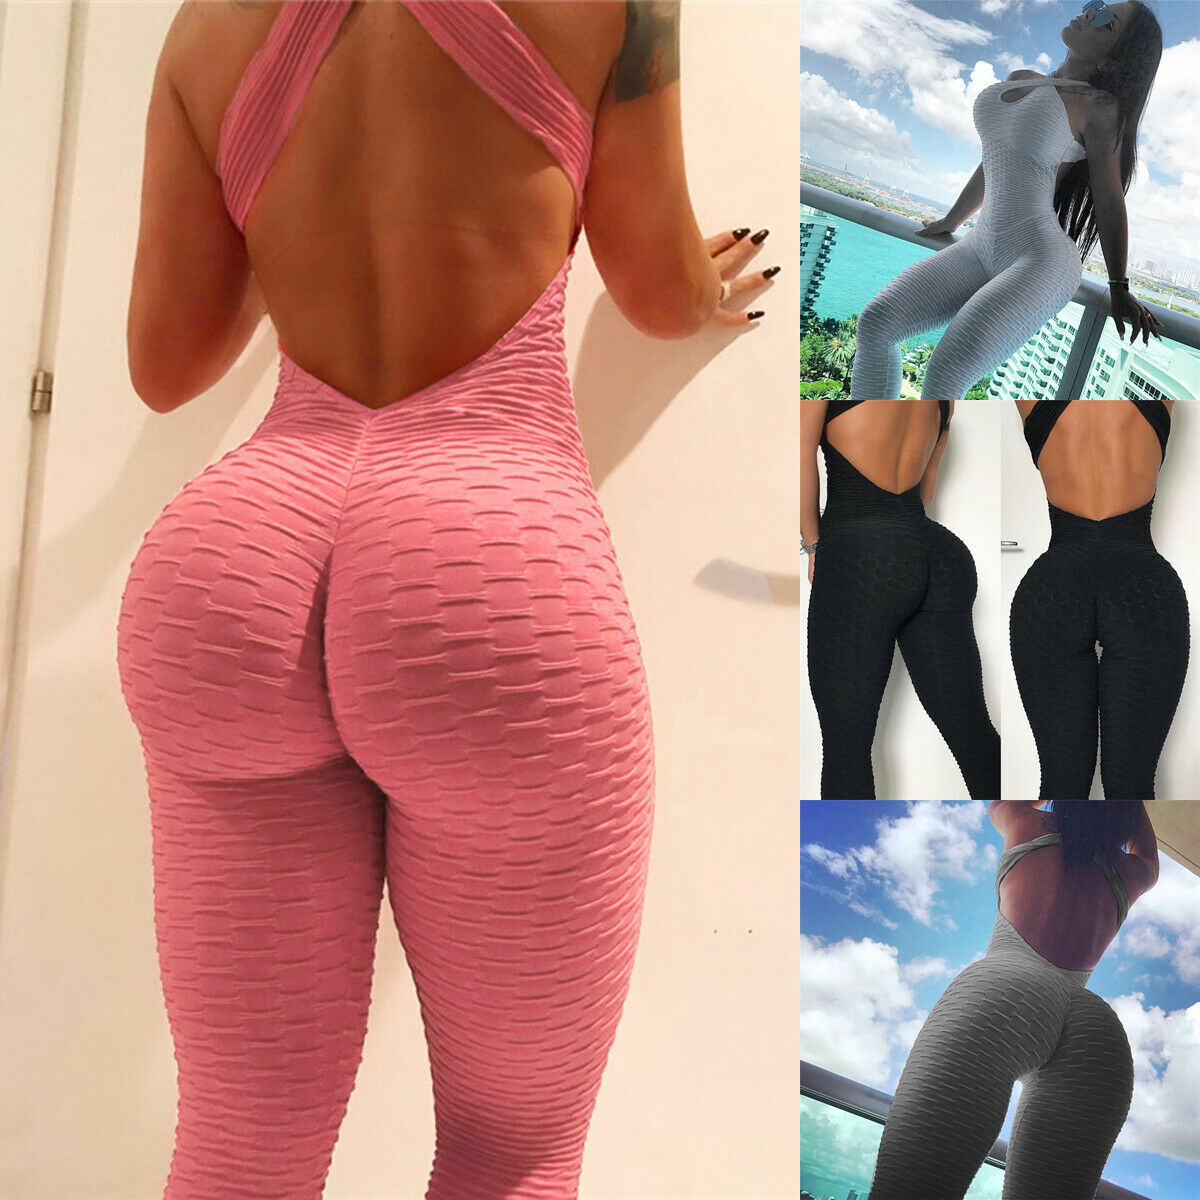 2019 Casual Women One Piece Fitness Jumpsuit Cross Backless Sleeveless Rompers Skinny Slim Suit Workout Jumpsuits Clothing